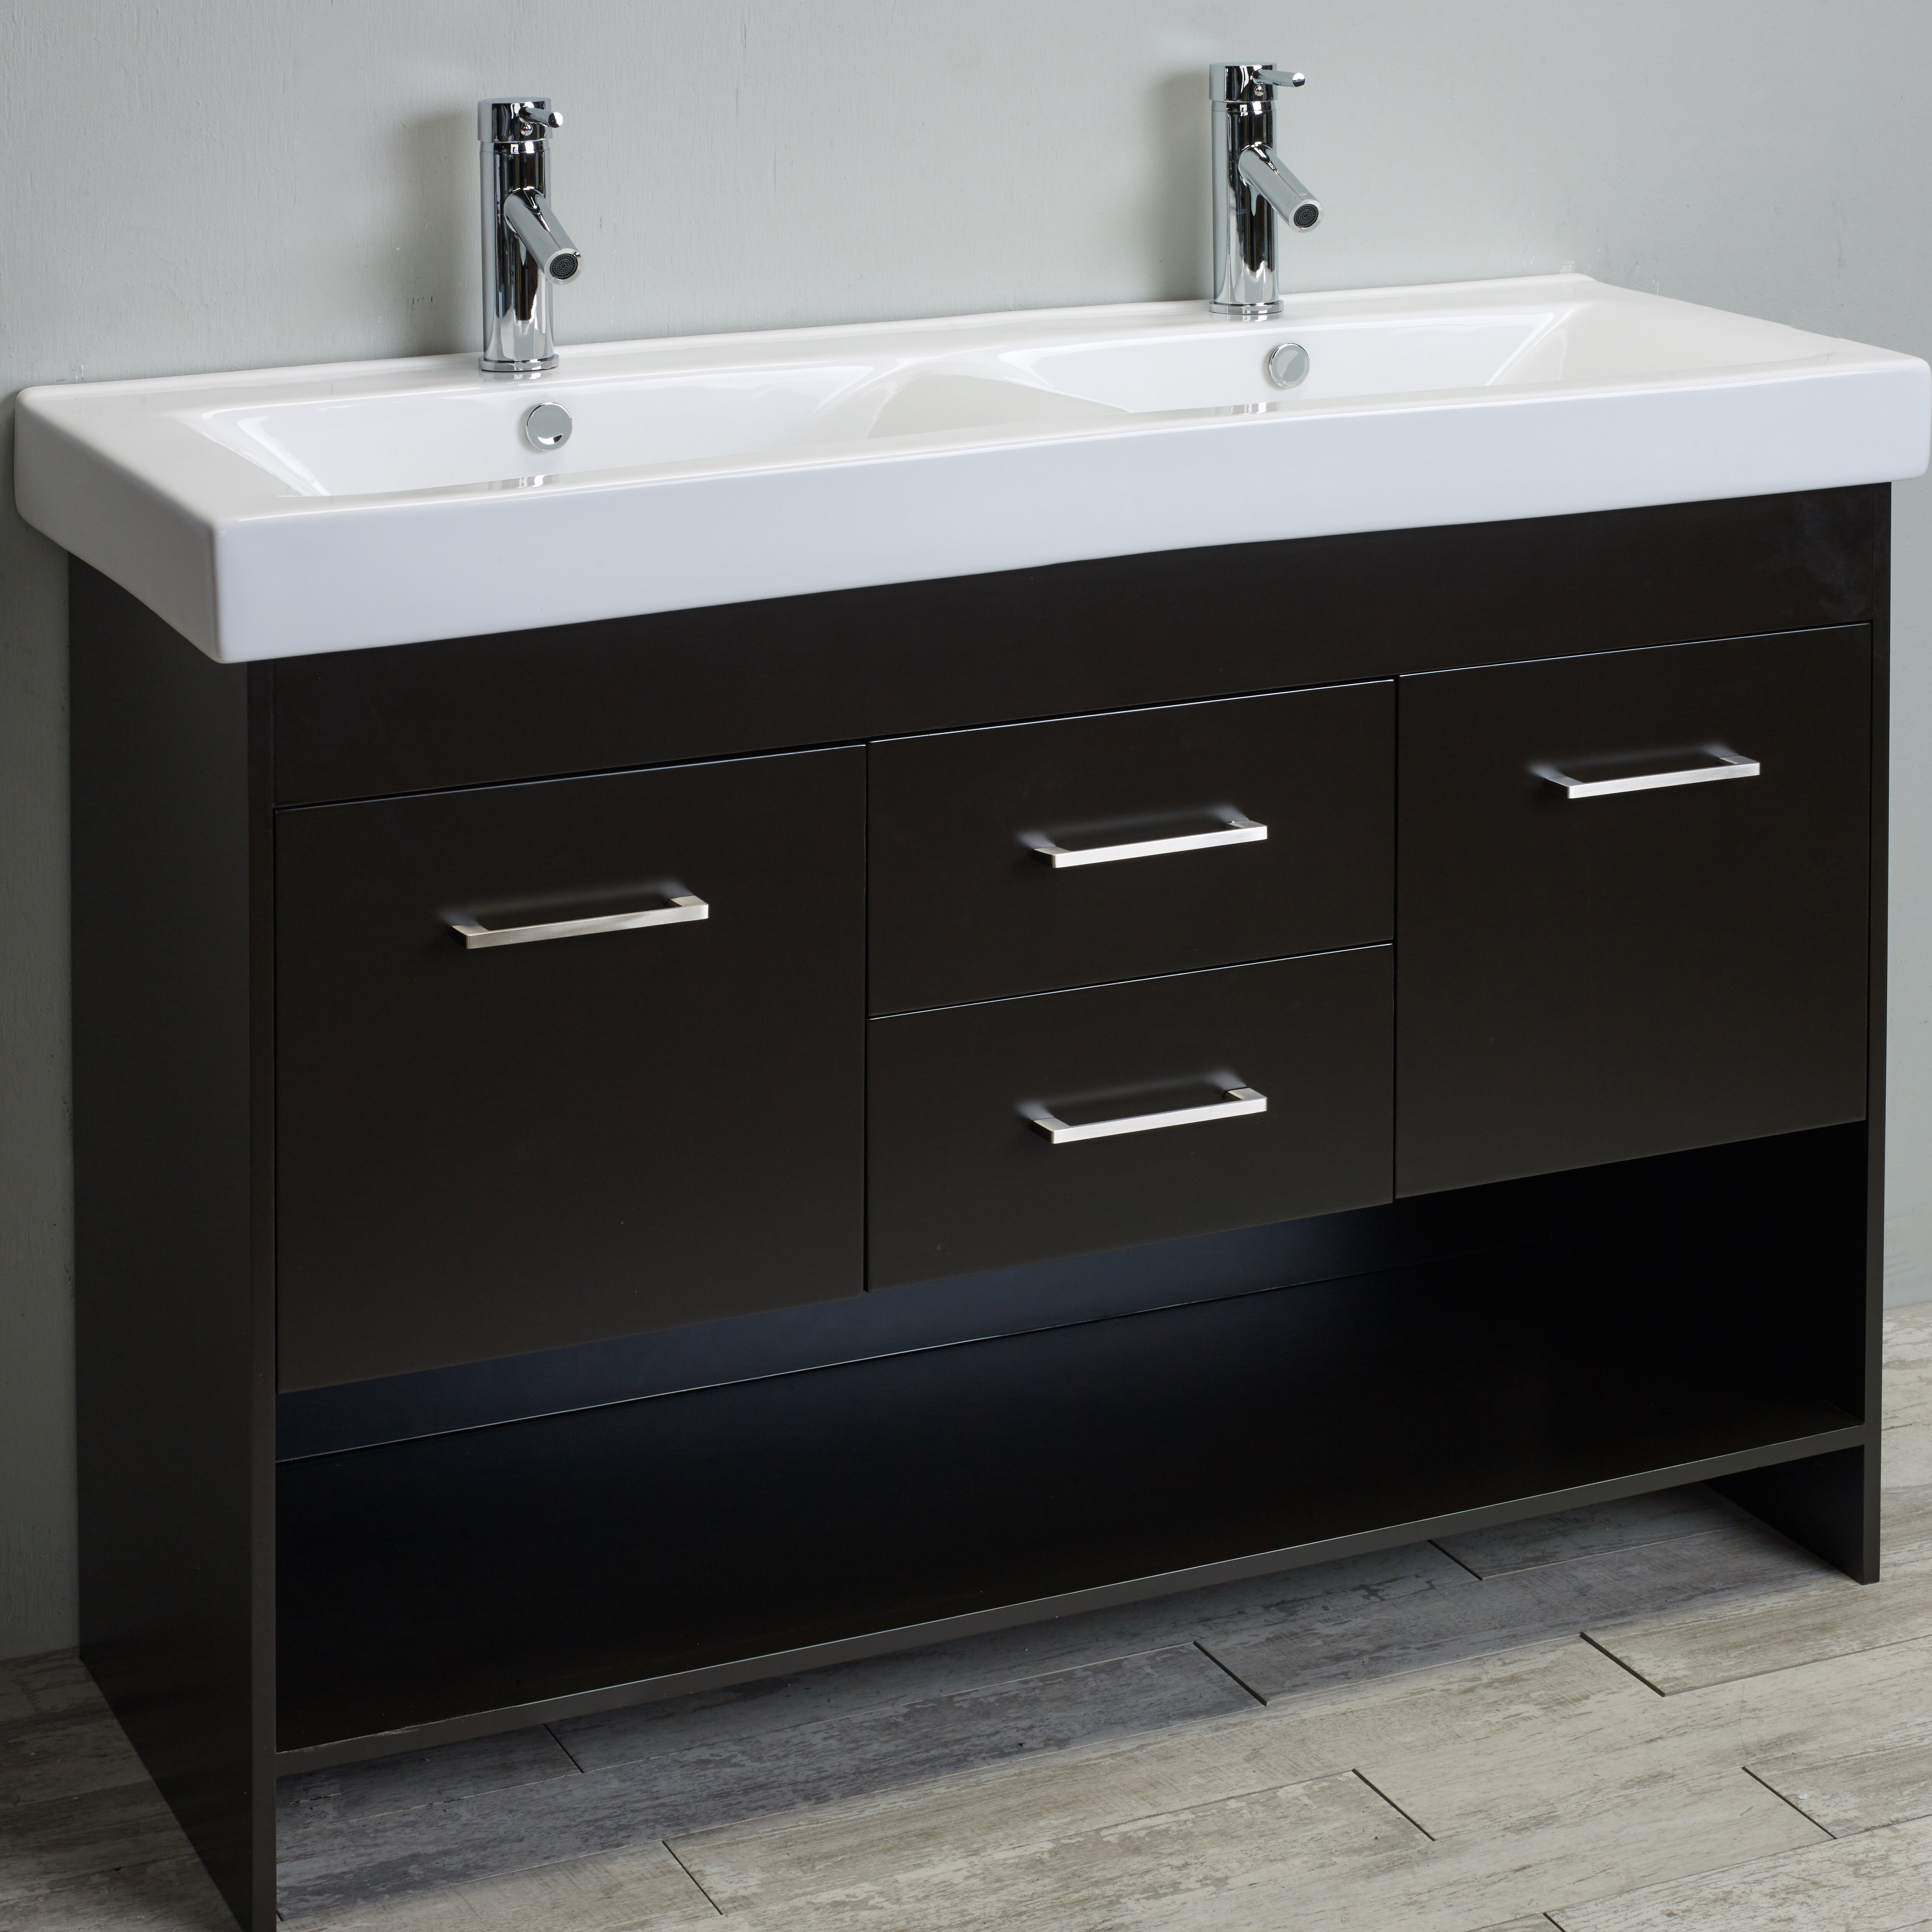 Eviva Gloria 48 Espresso Double Bathroom Vanity Set With White Integrated Double Porcelain Sink